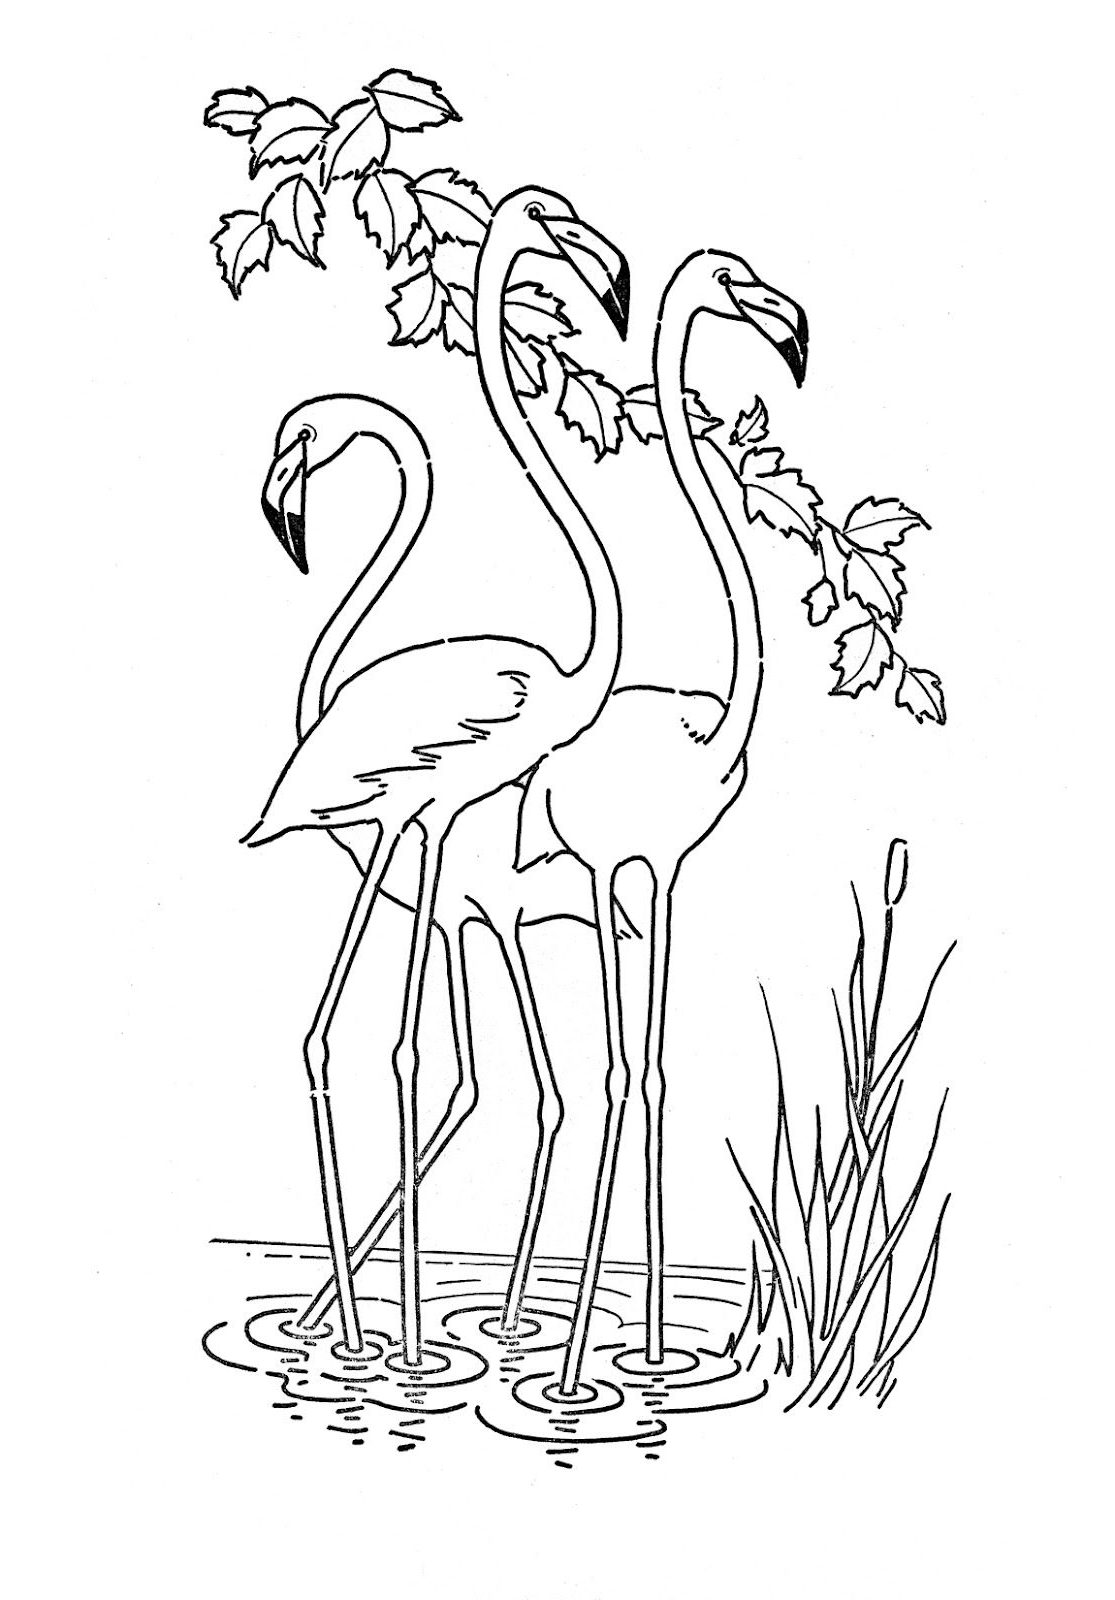 Animal Coloring Pages | Free coloring pages printable for ...